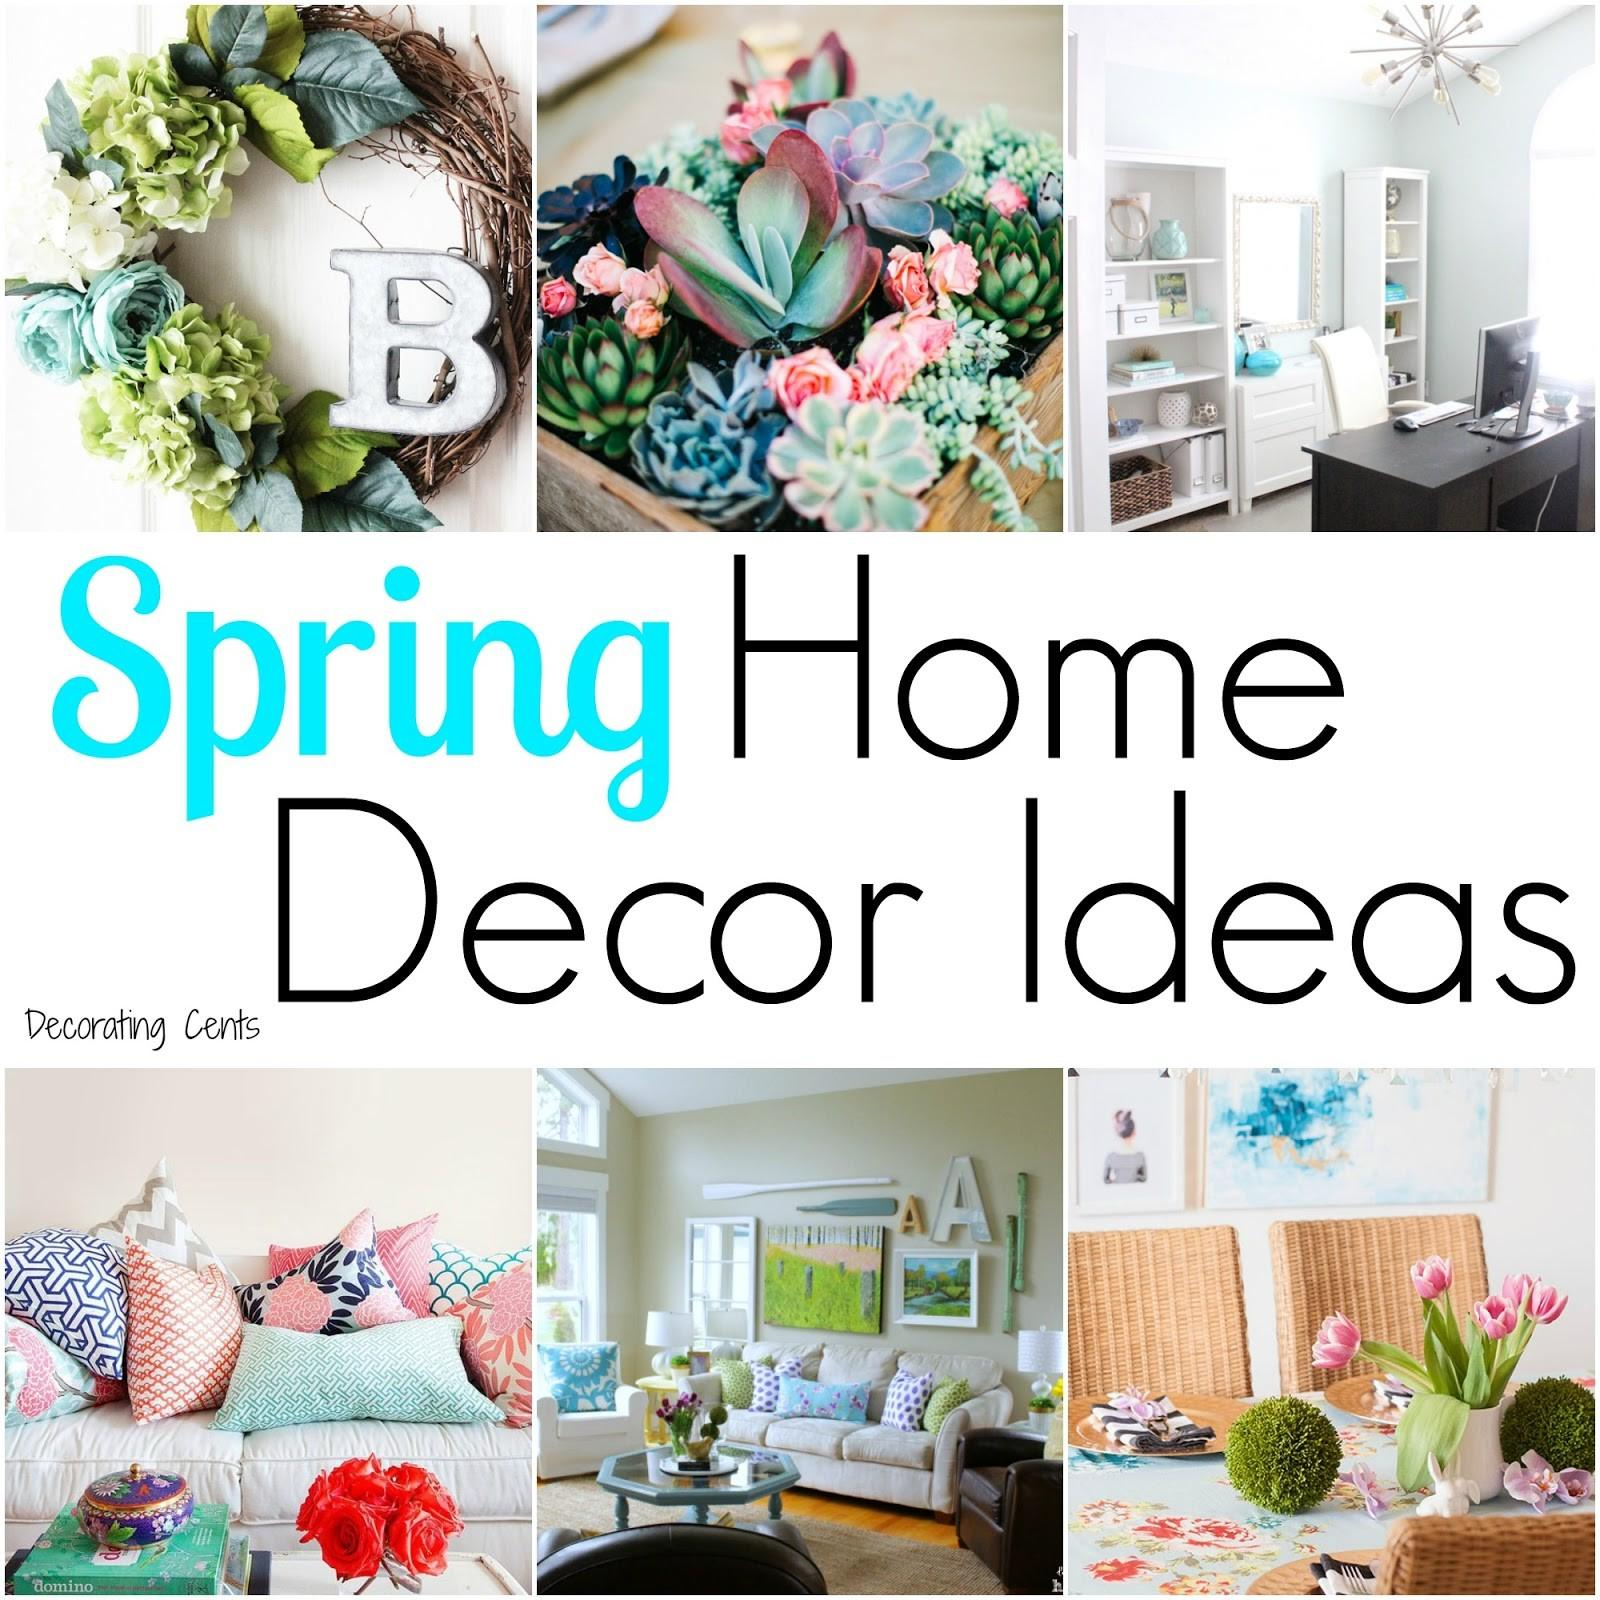 Decorating Cents Spring Home Decor Ideas